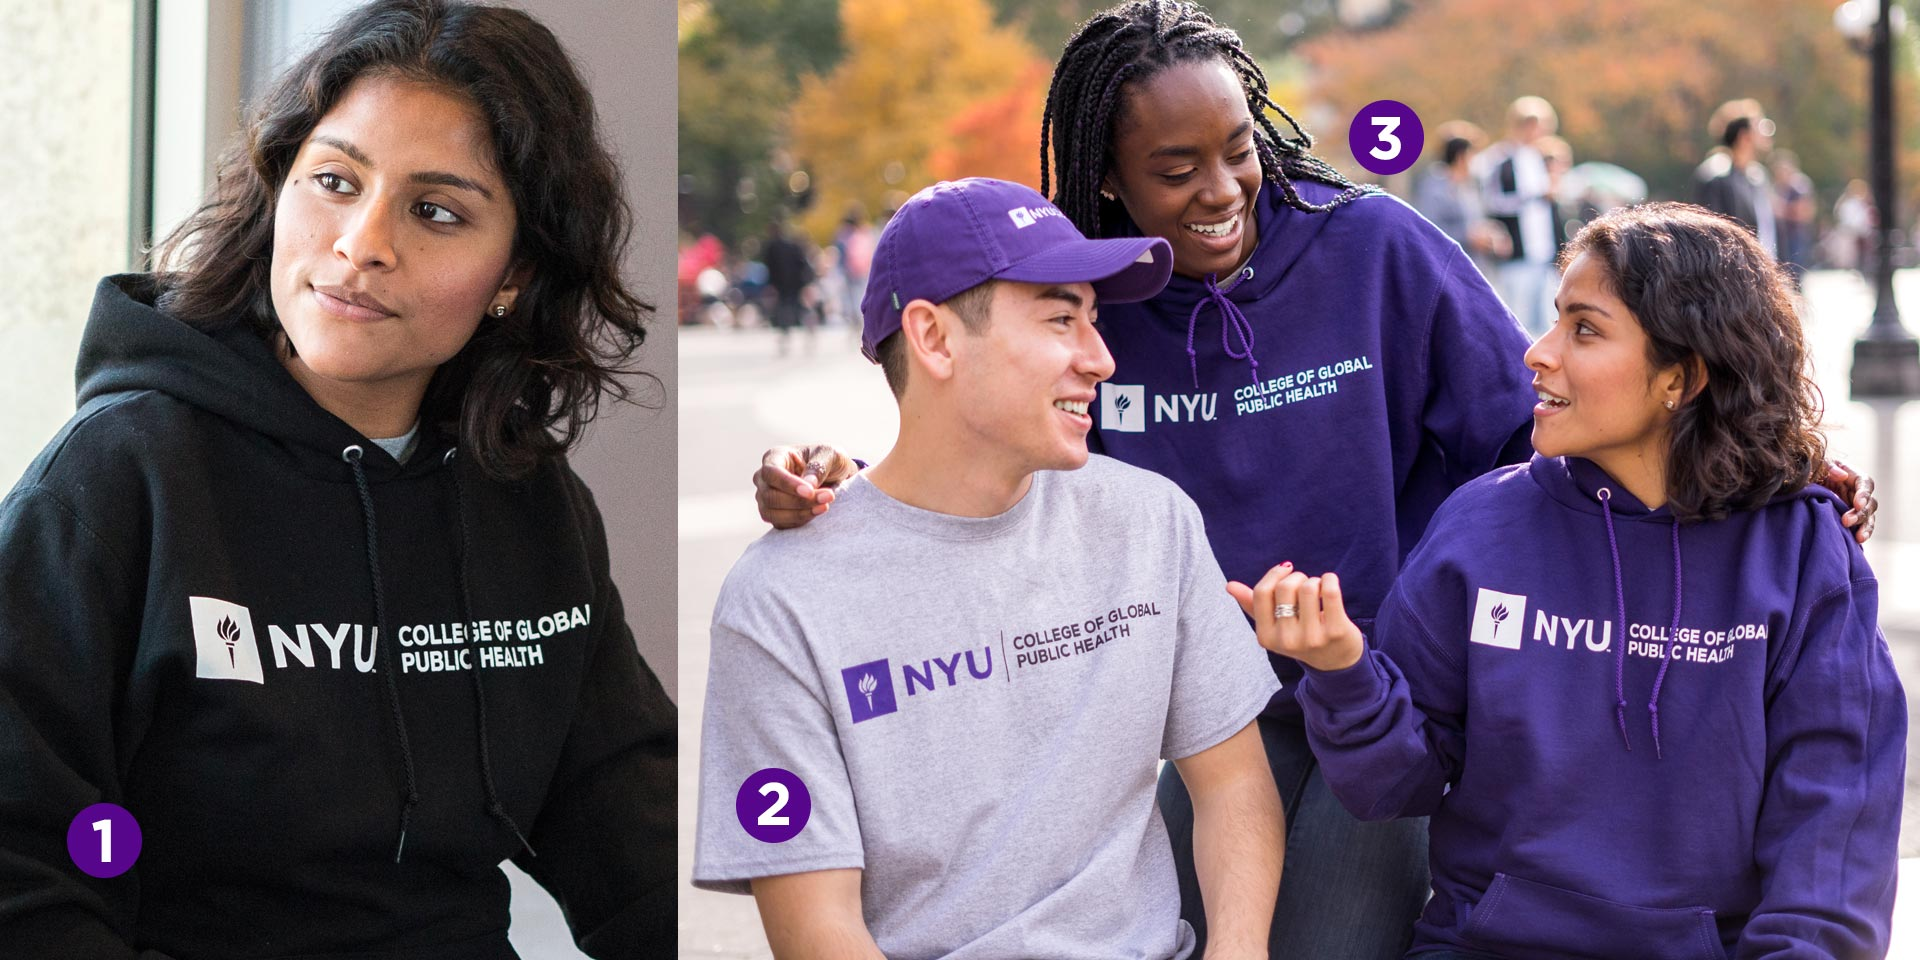 NYU GPH Branded Hoodie and T-shirt